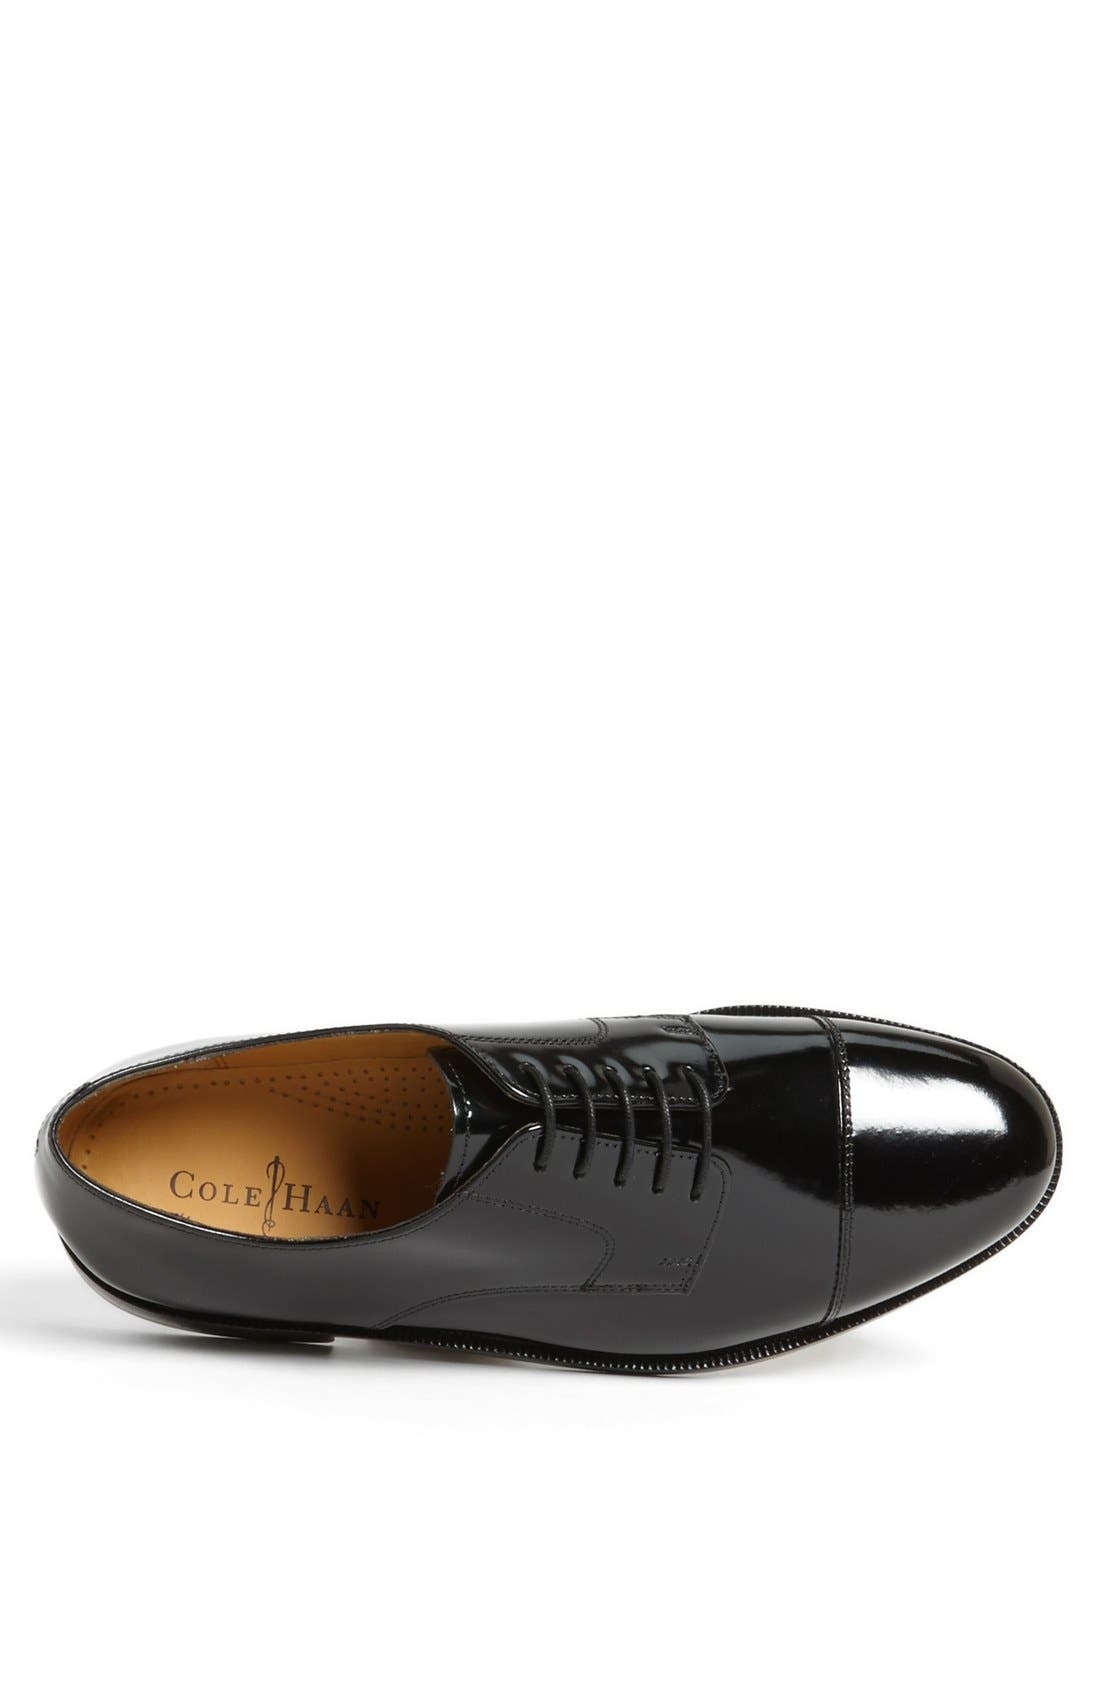 Alternate Image 3  - Cole Haan 'Caldwell' Derby (Online Only)   (Men)